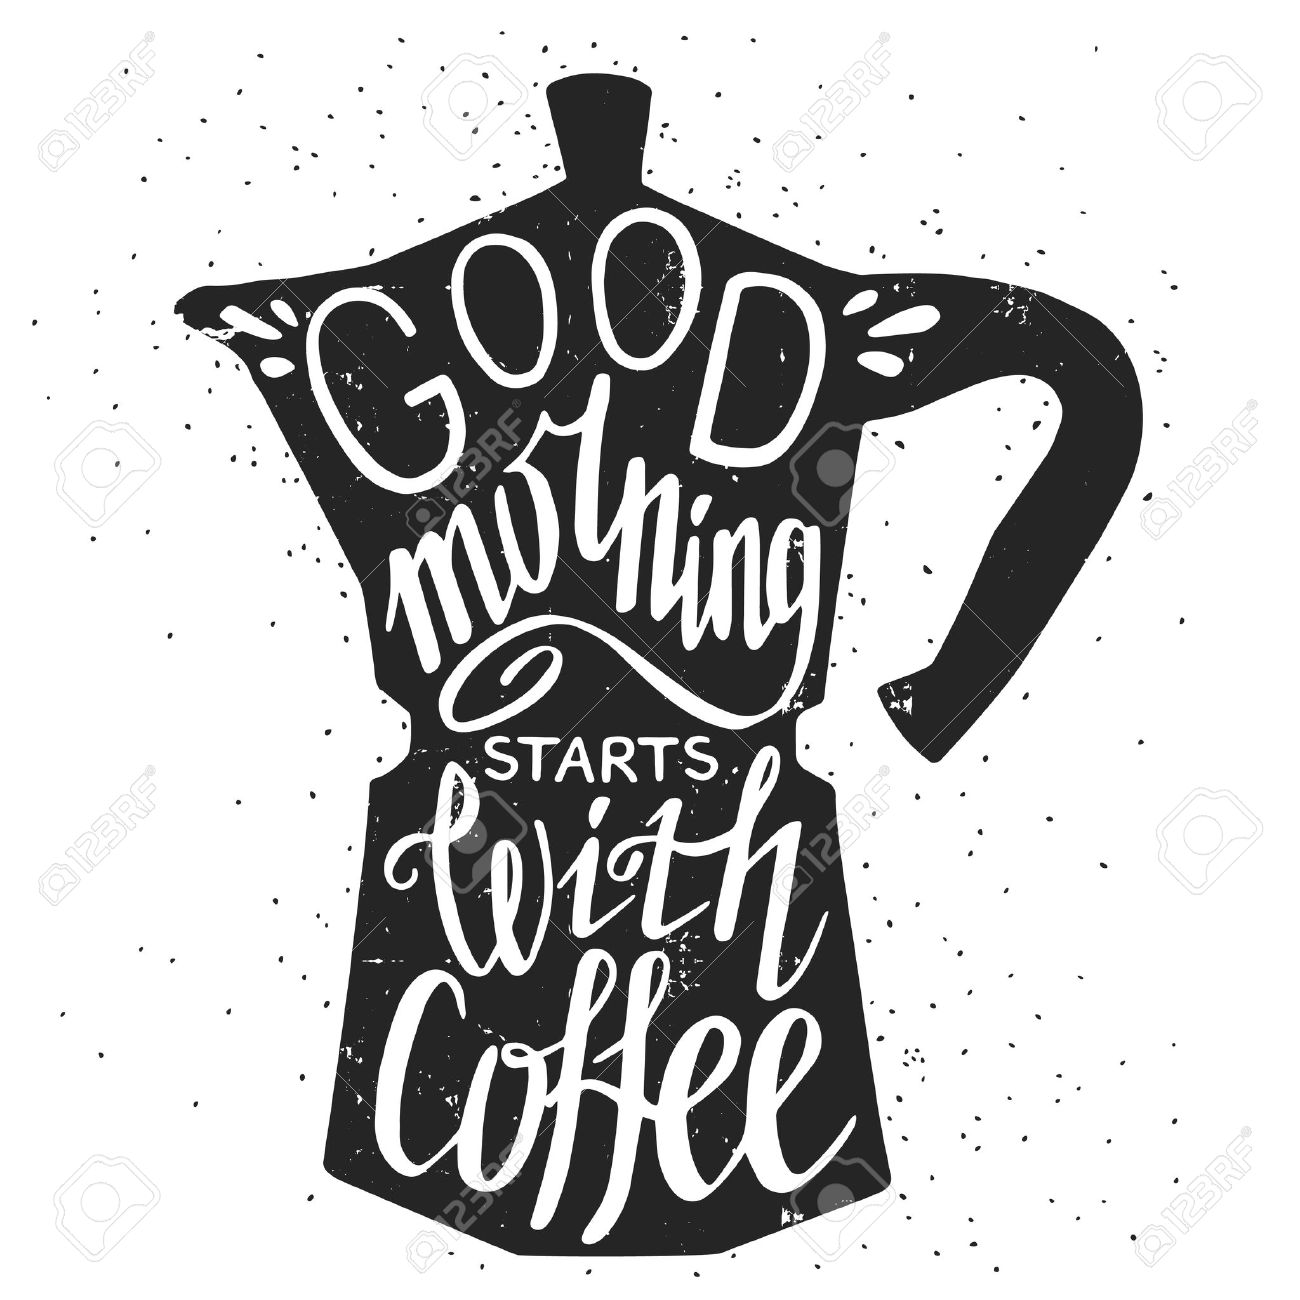 Image of: Beautiful Typography Hand Drawn Typography Poster Greeting Card Or Print Invitation With Coffee Maker Silhouette And Phrase Placeit Hand Drawn Typography Poster Greeting Card Or Print Invitation